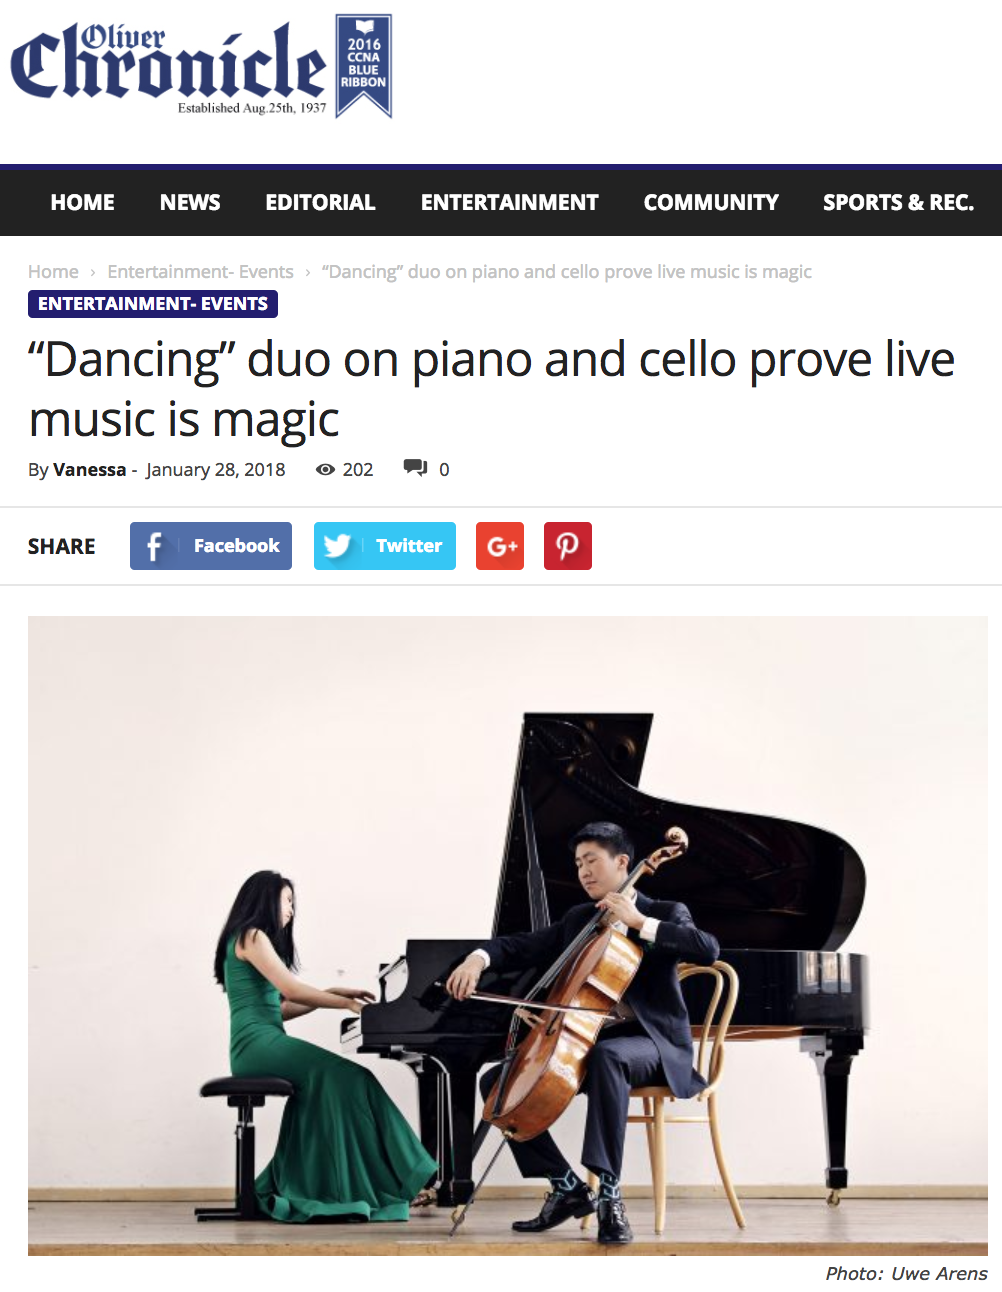 Duo proves live music is magic